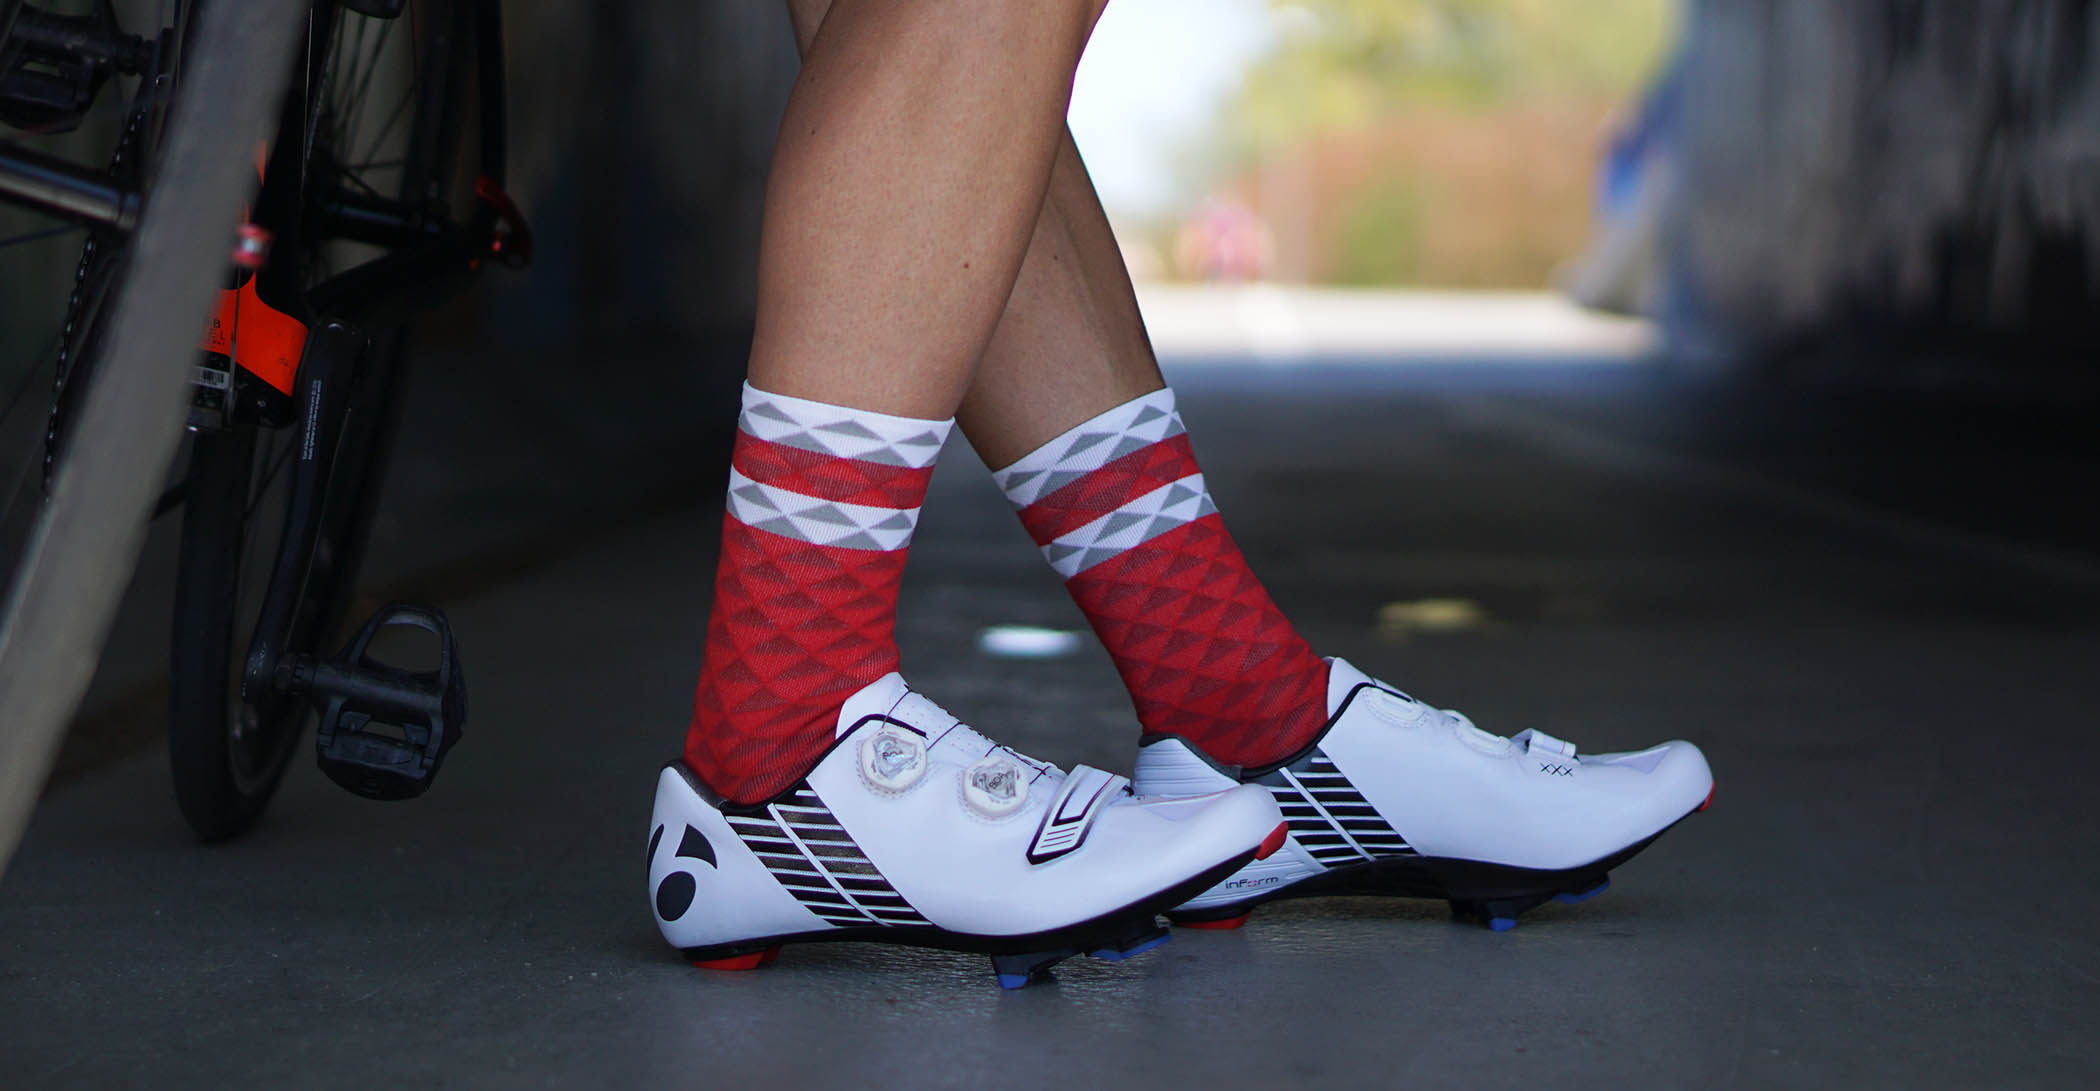 socks for road cyclists in red pattern made in europe